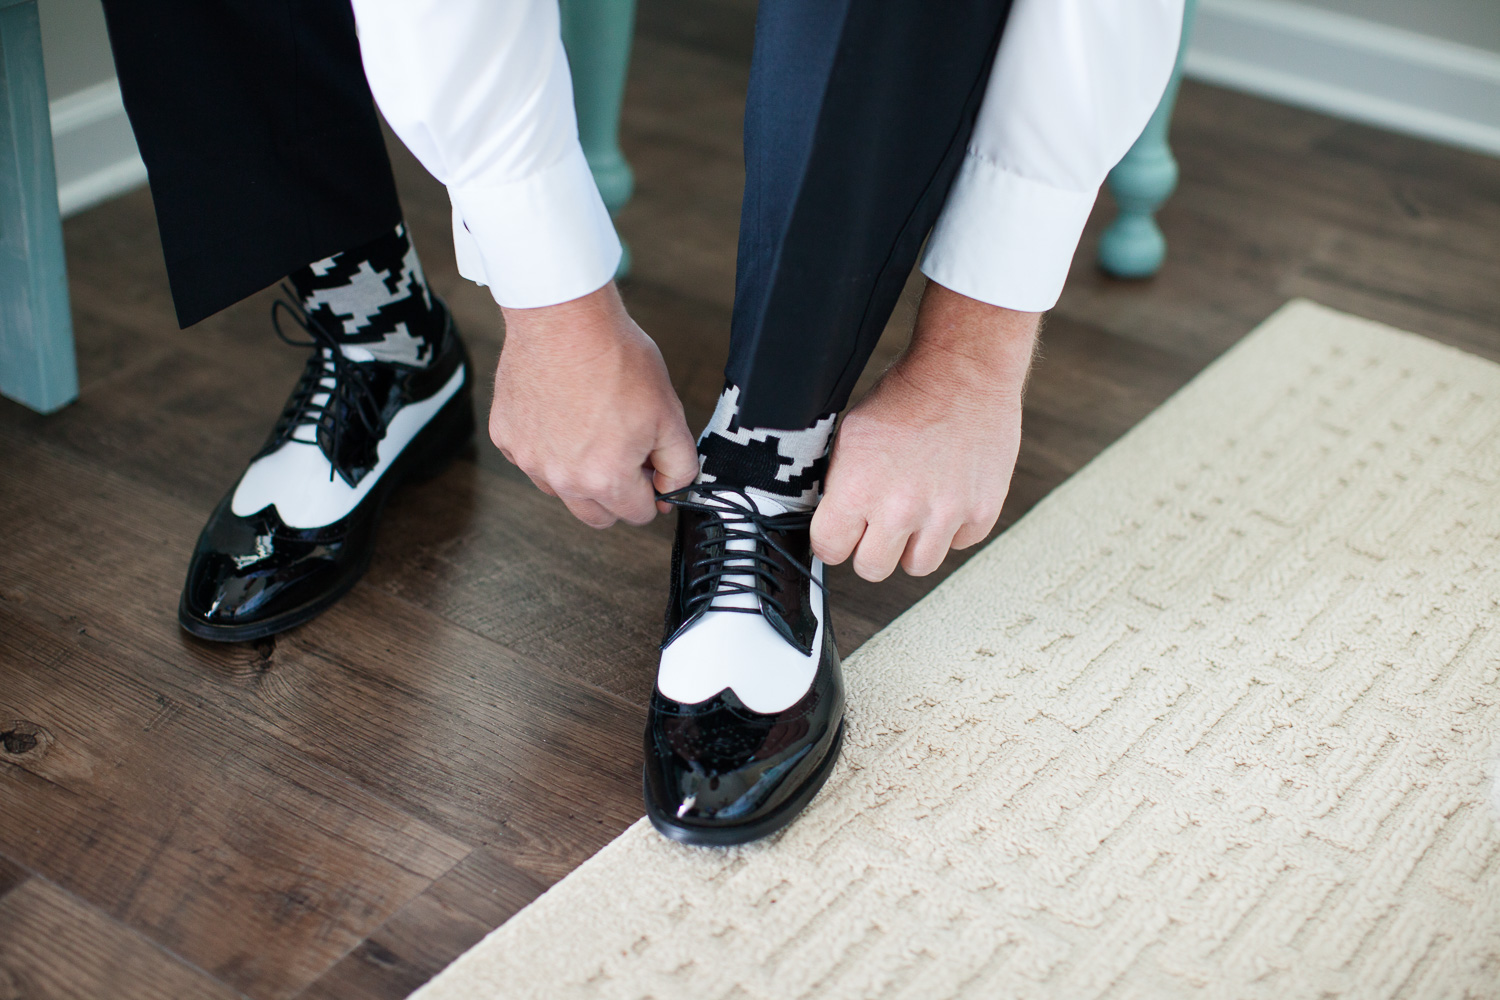 Groom footwear on POINT, y'all.